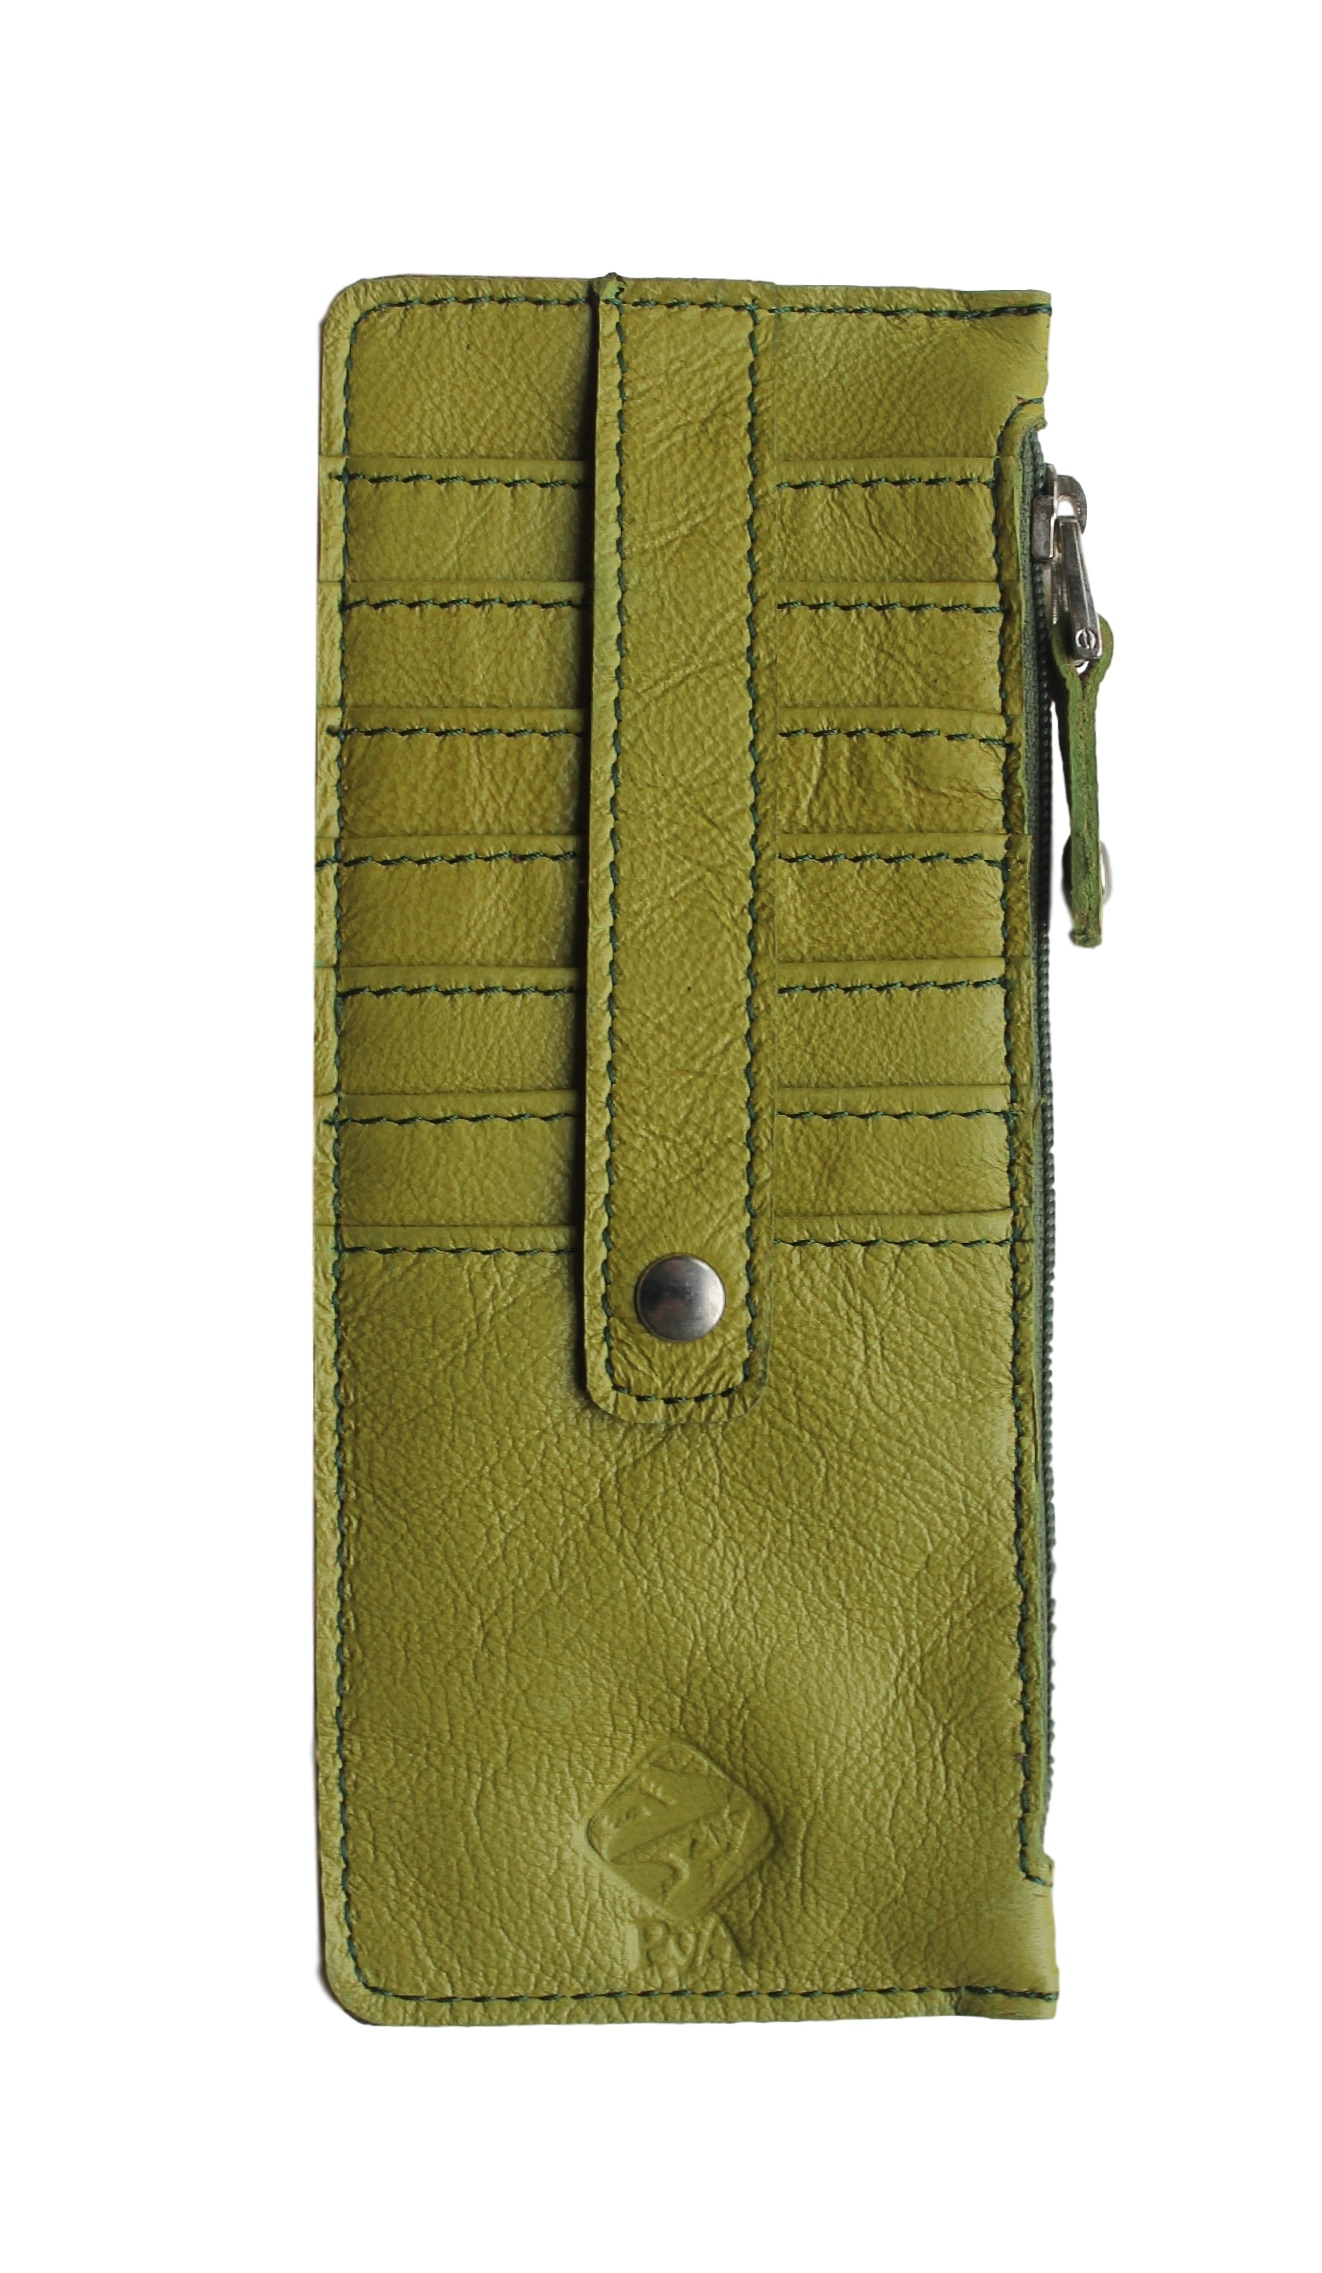 Marcal Olive Green Wallet from FerWay Designs